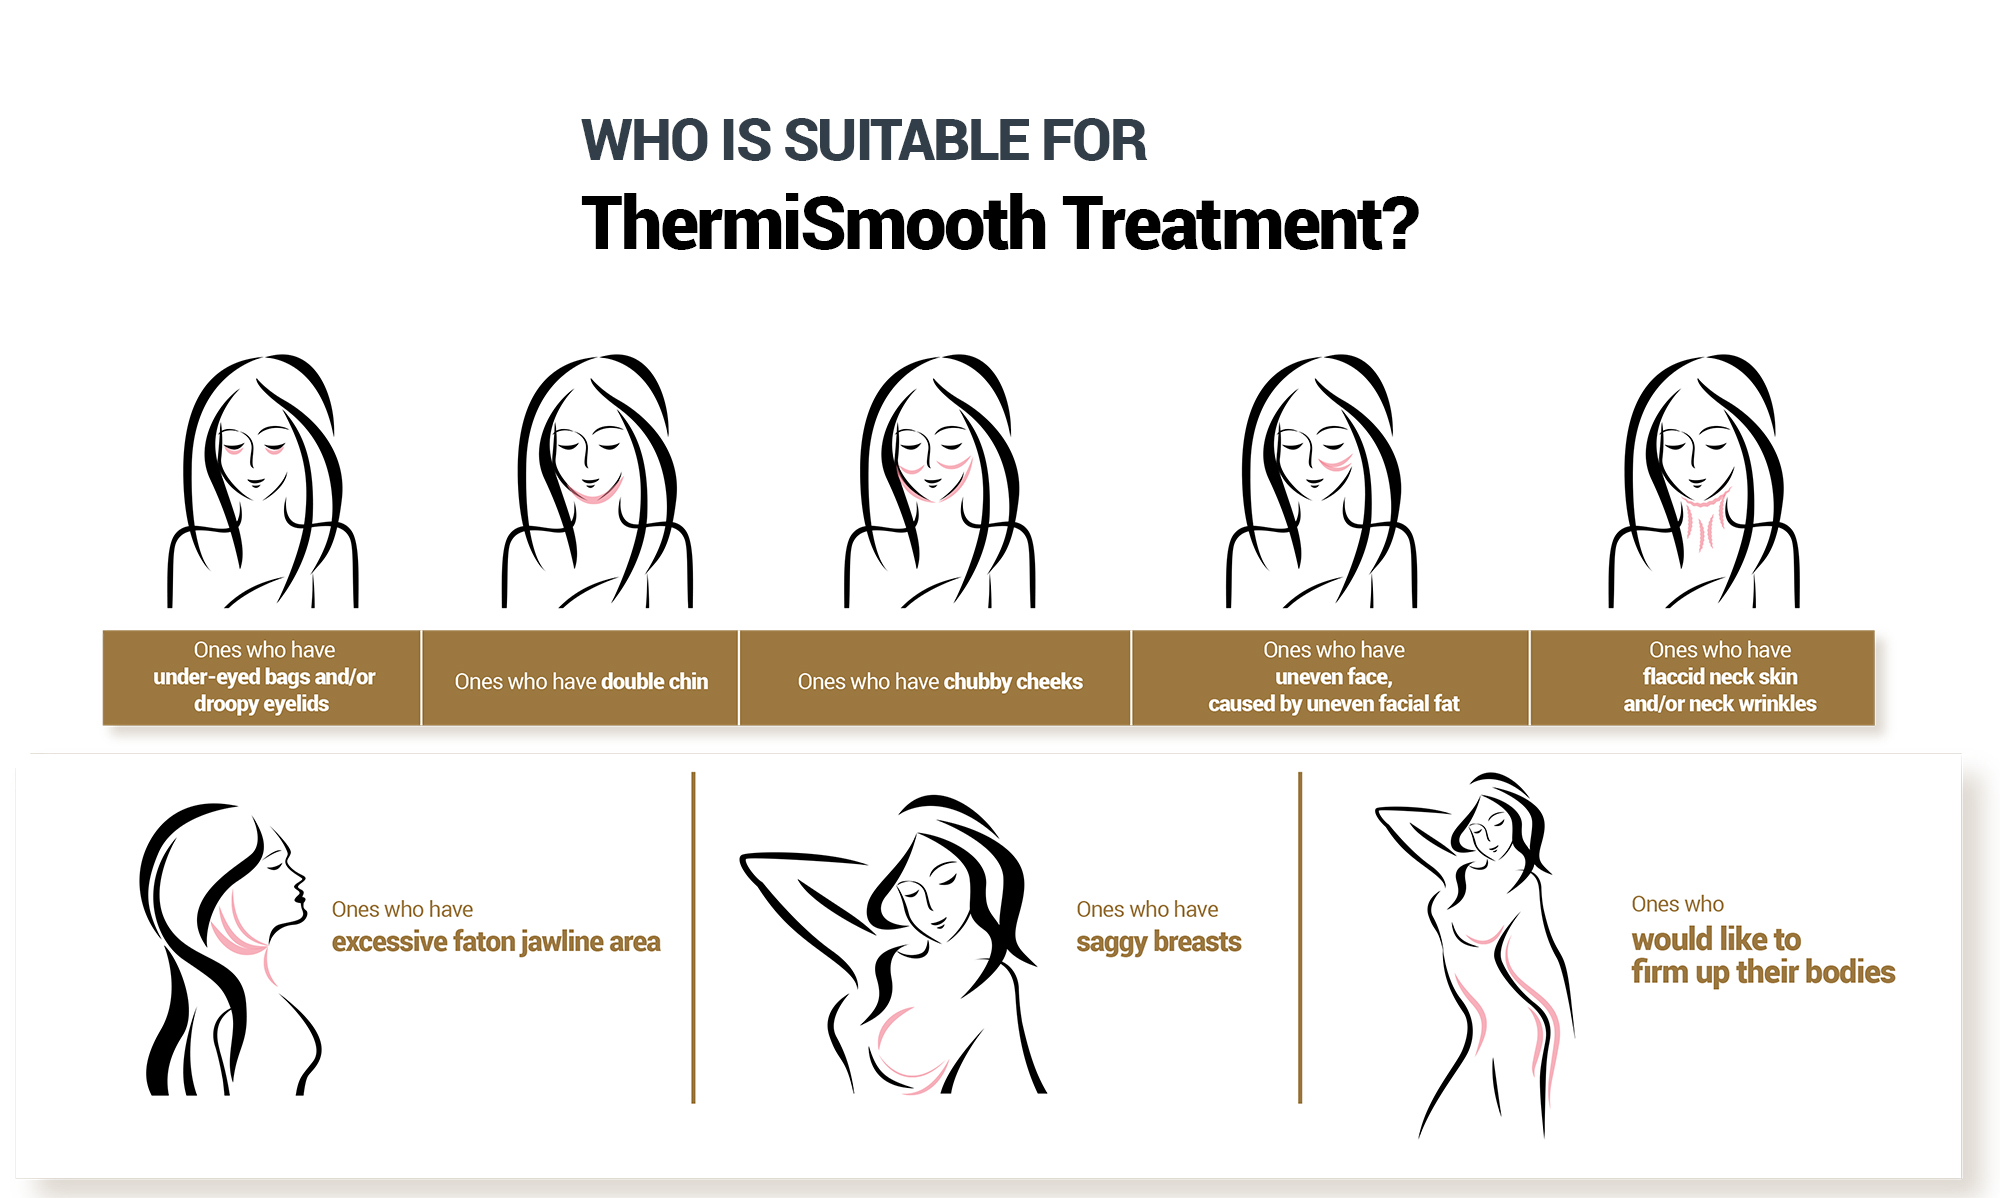 WHO IS SUITABLE FOR THERMISMOOTH